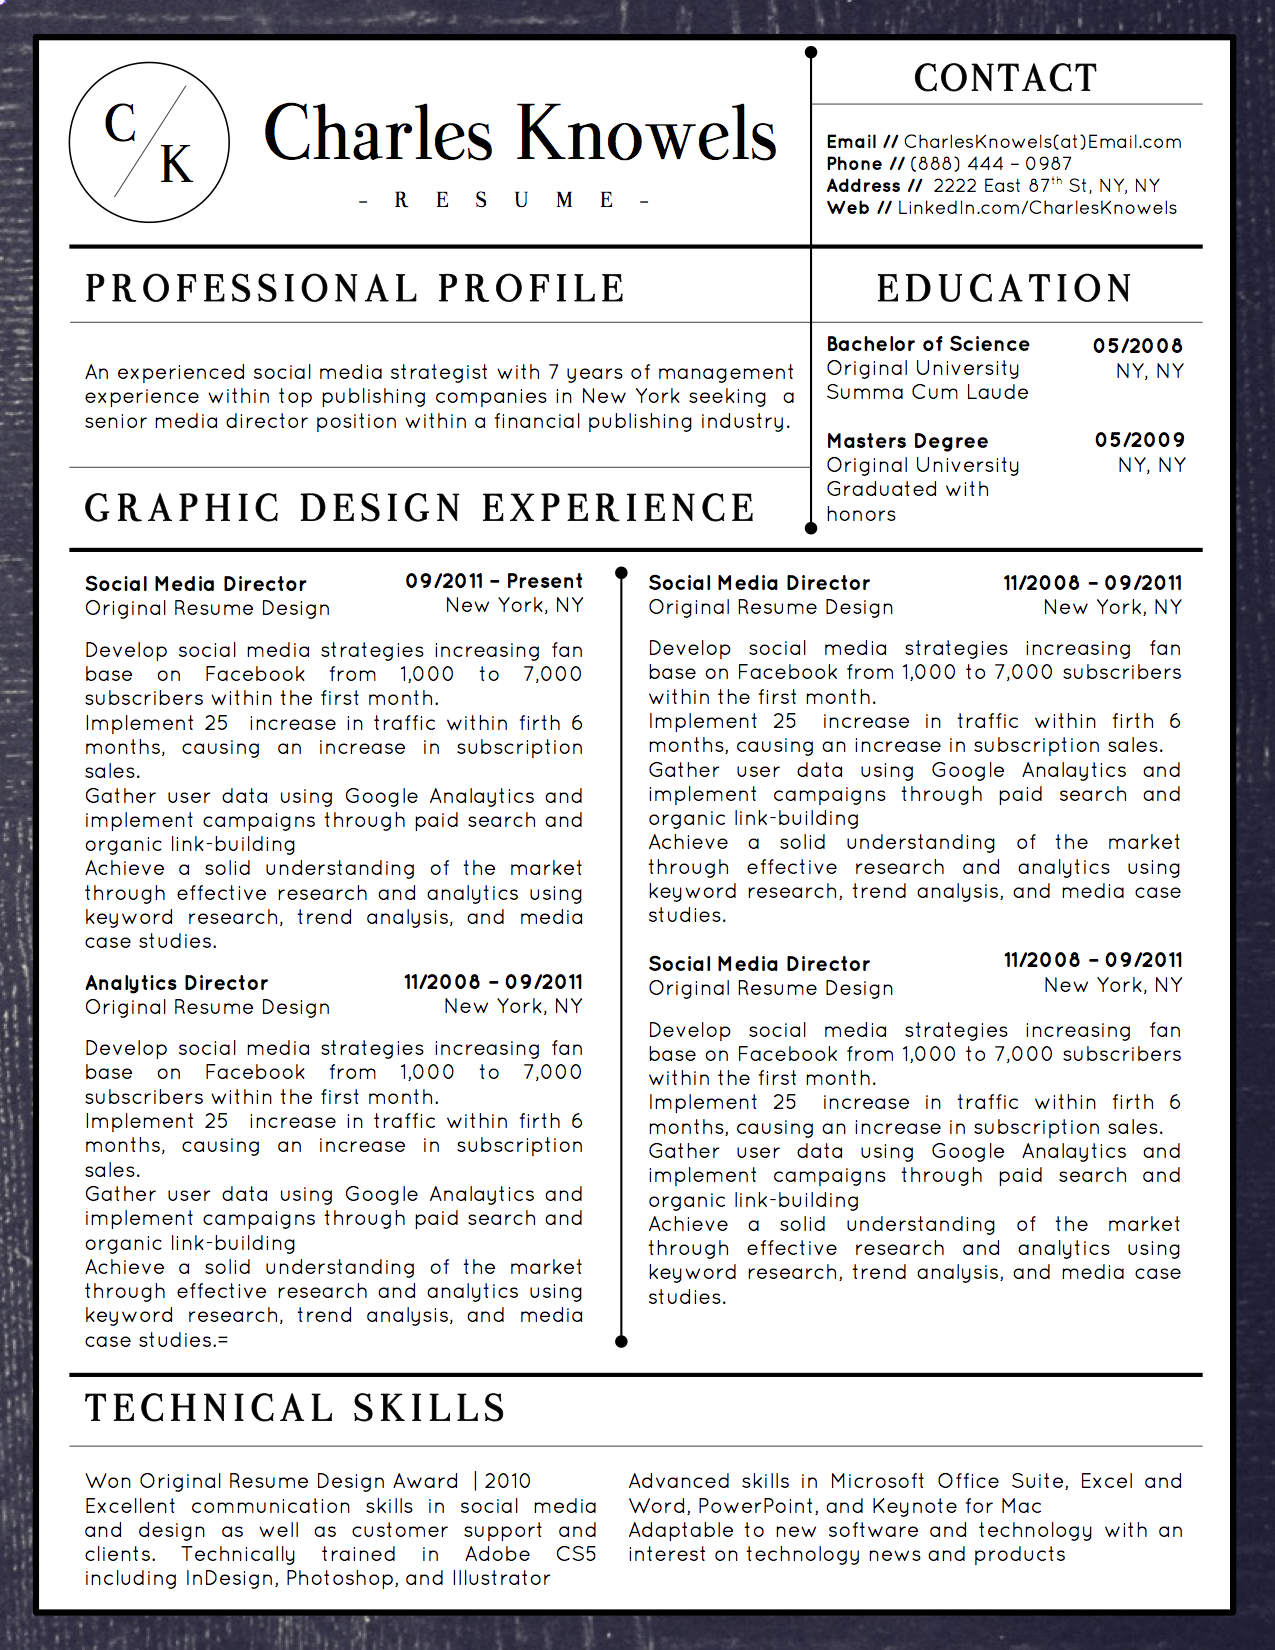 Charles Knowels Downloadable Resume + Cover Template And Cover Letter  Template For Microsoft Word And Apple